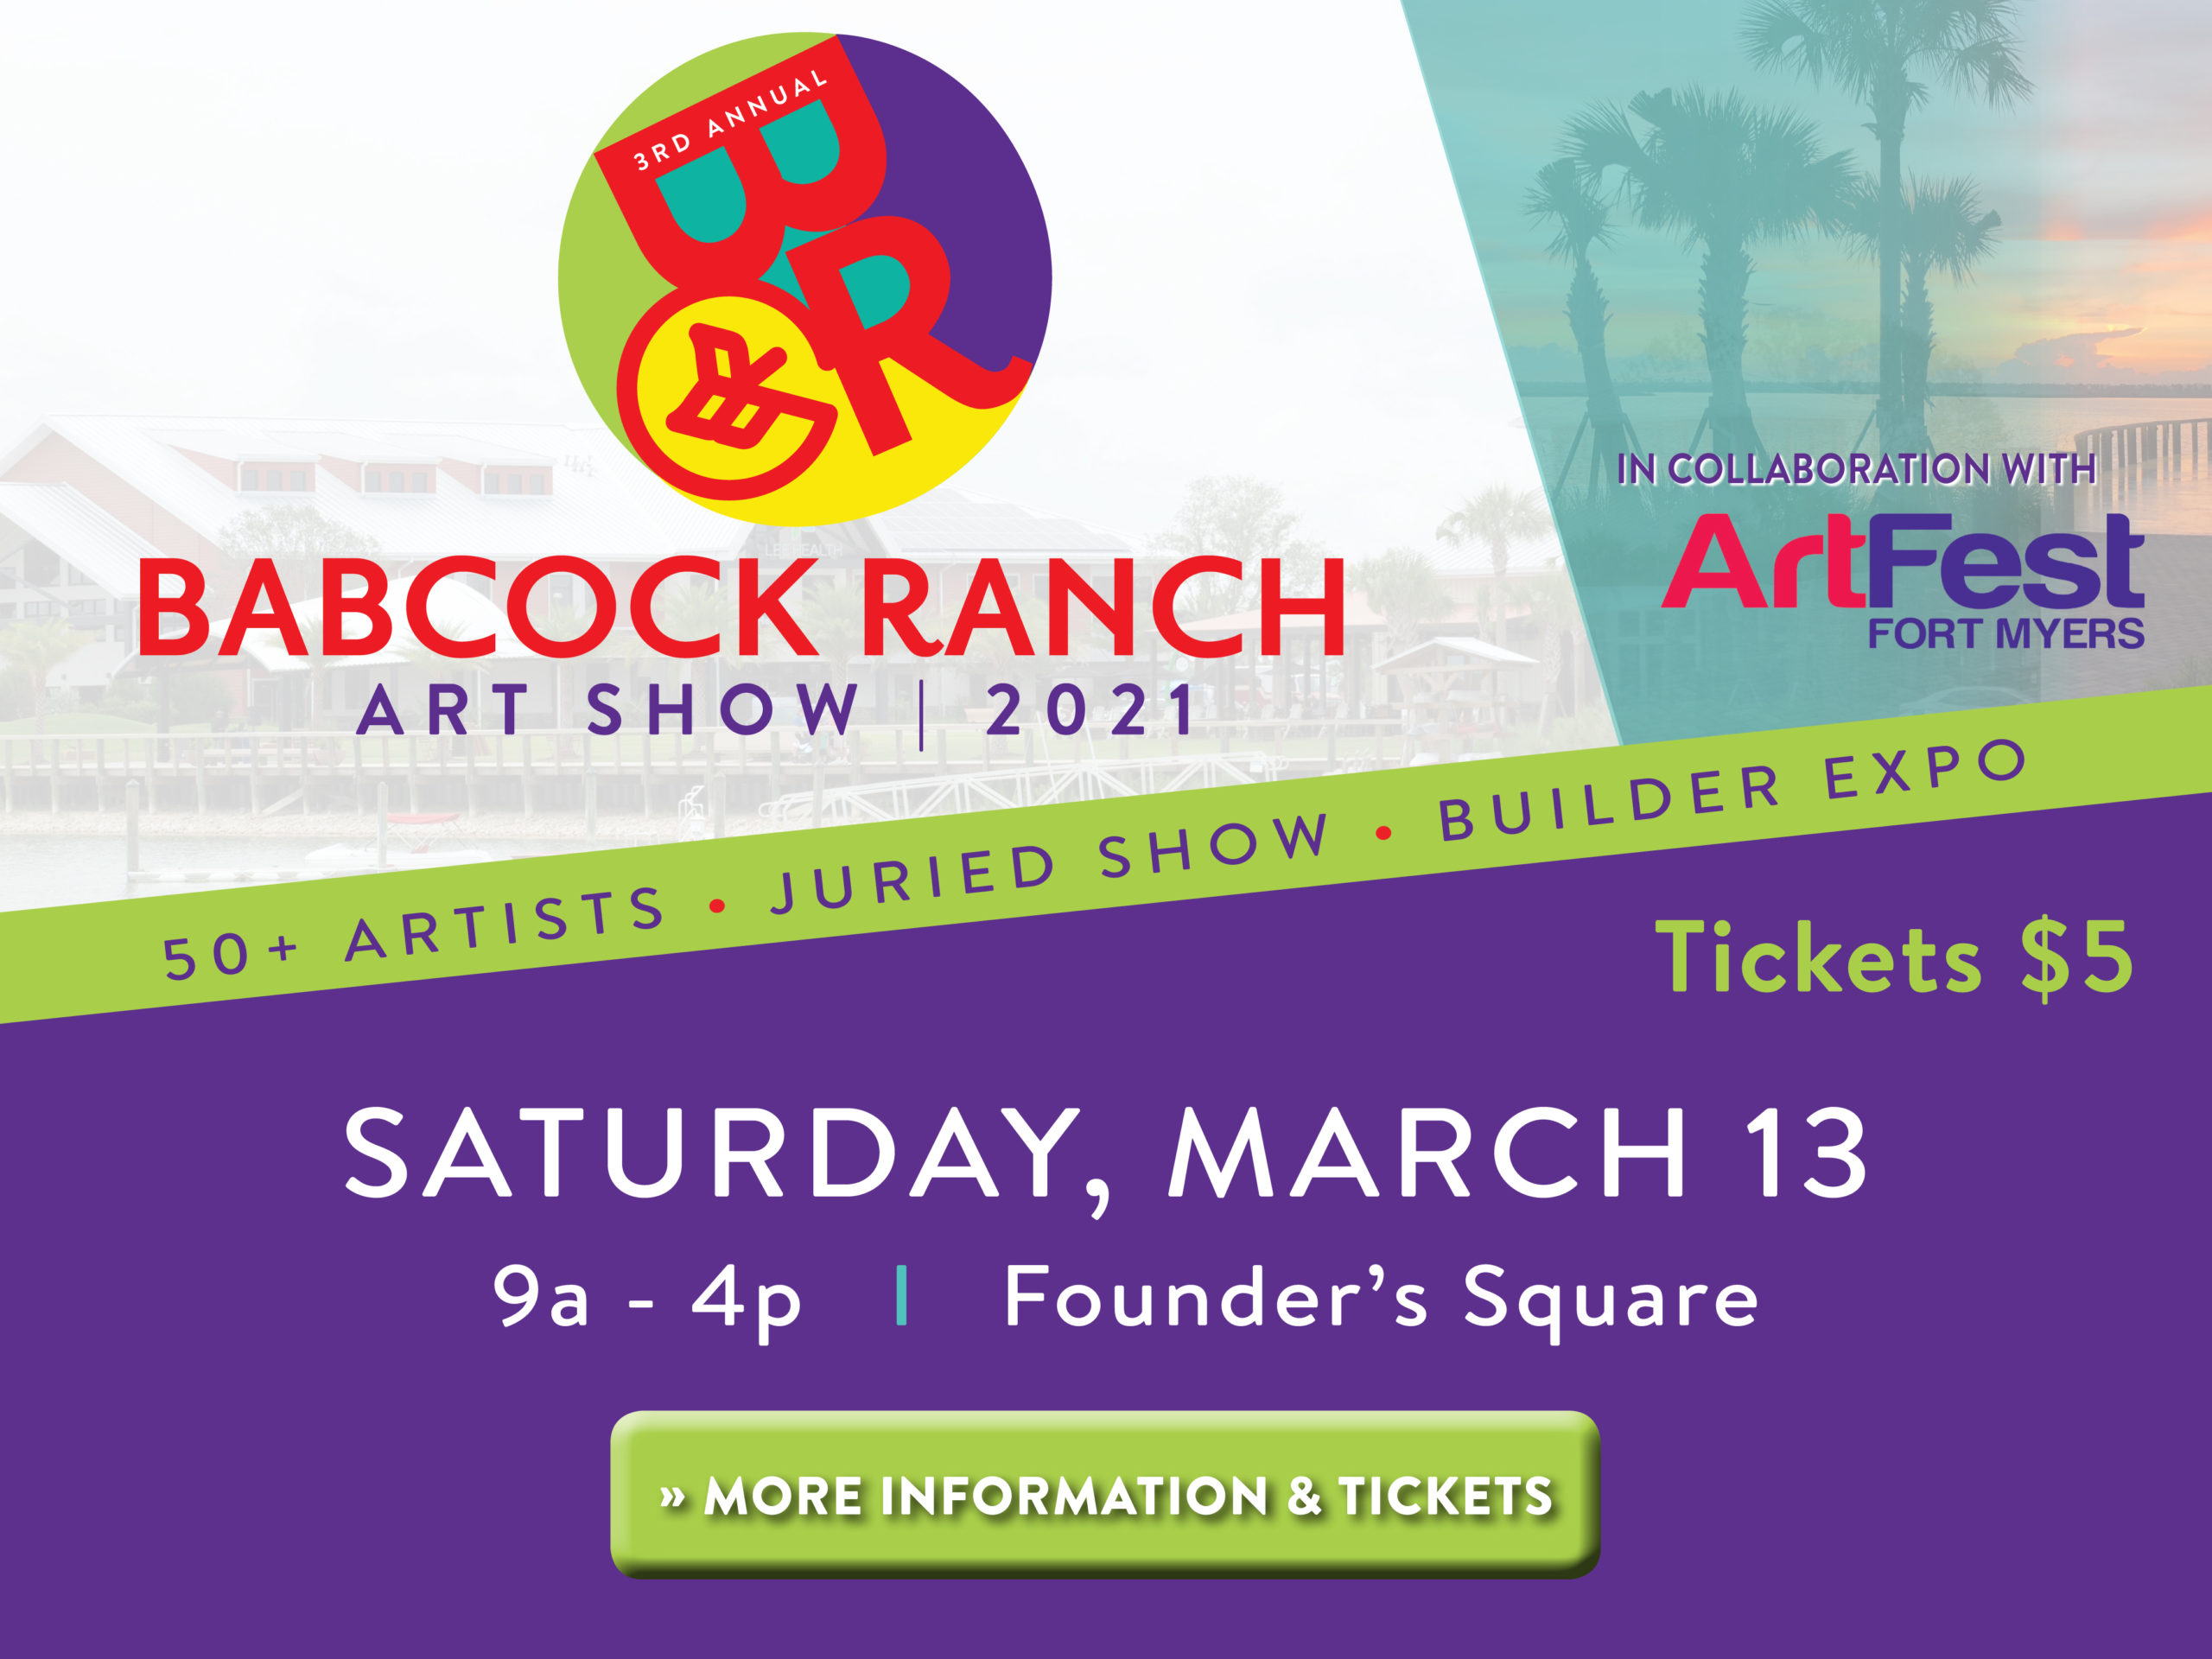 Babcock Ranch Art Show 2021 - In collaboration with ArtFest Fort Myers. 50+ artists, juried show, builder expo. Tickets are $5. Saturday, March 13 at 9:00AM - 4:00PM at Founder's Square. Click here for more information and tickets.